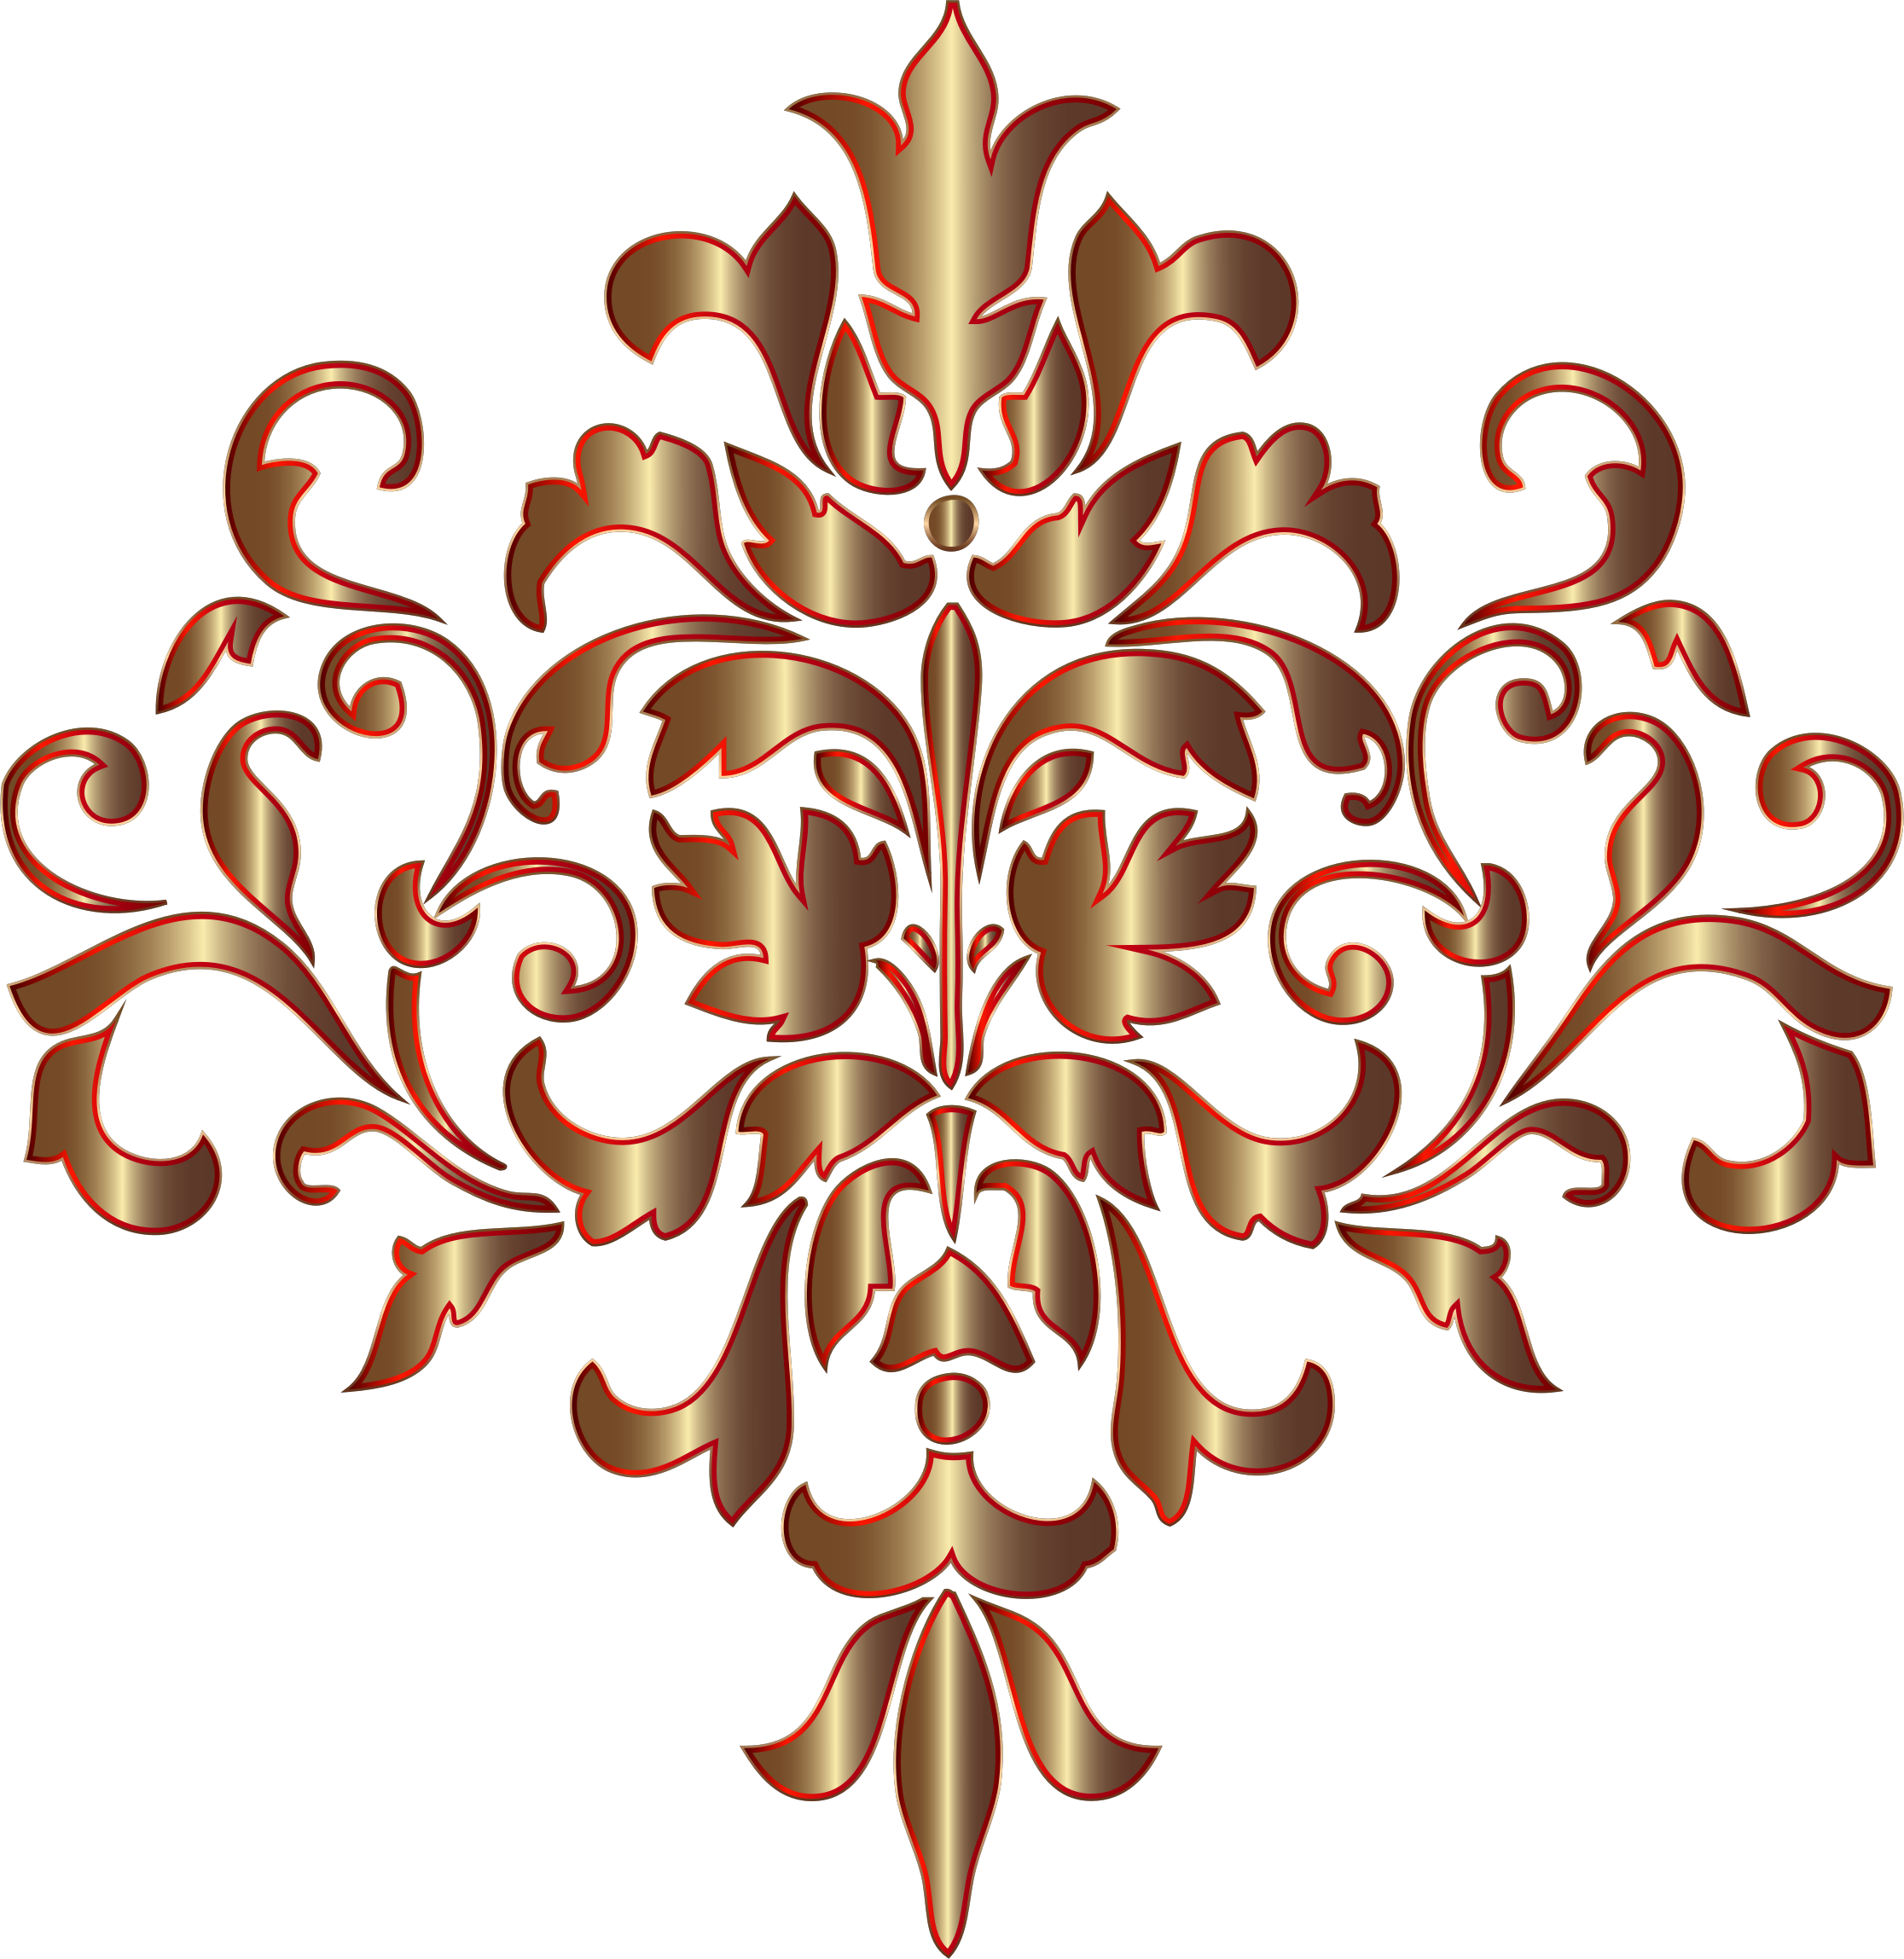 Festive Damask Design No Background by GDJ